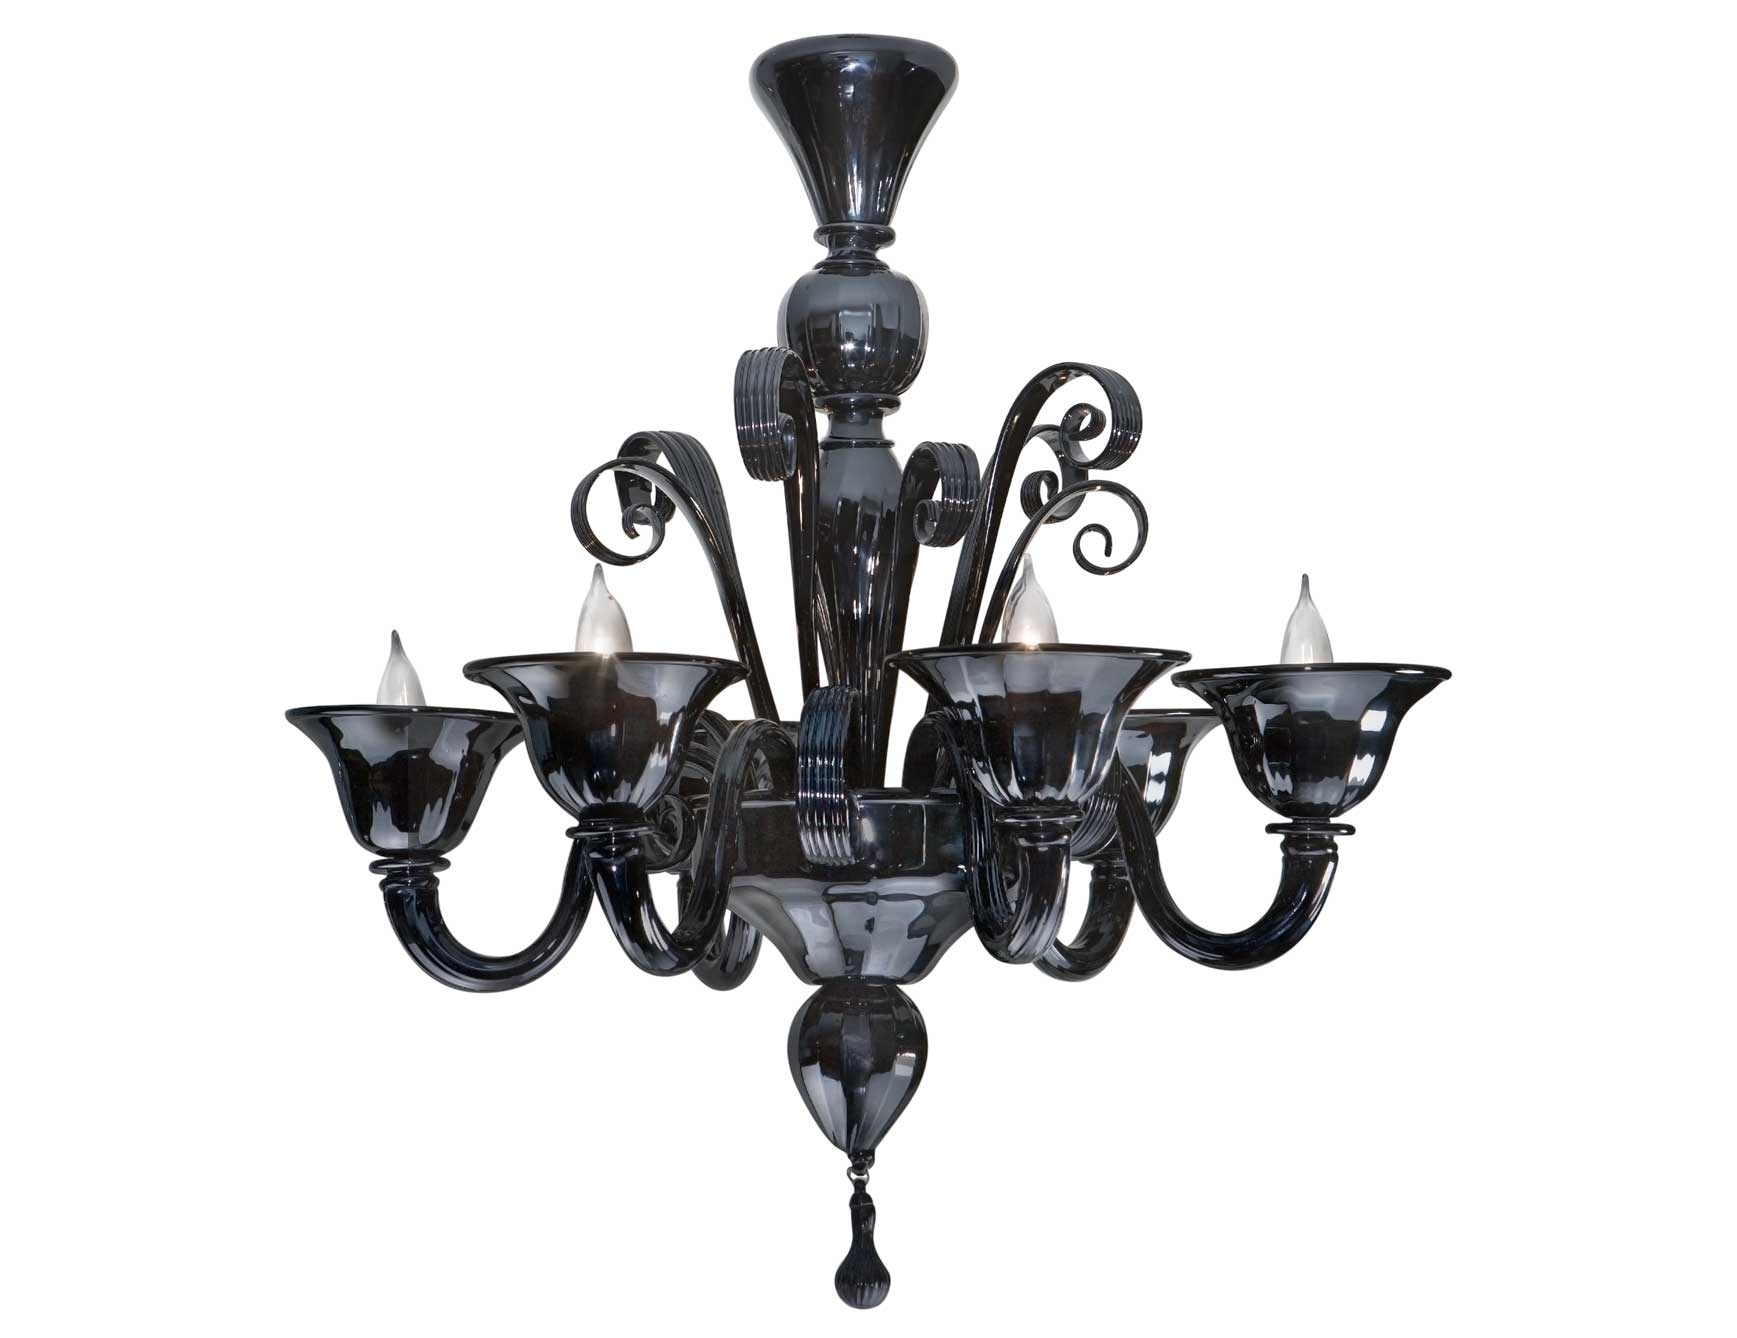 Nella Vetrina Black Murano 6 9596 Murano Chandelier In Black Intended For Black Glass Chandelier (Image 12 of 15)